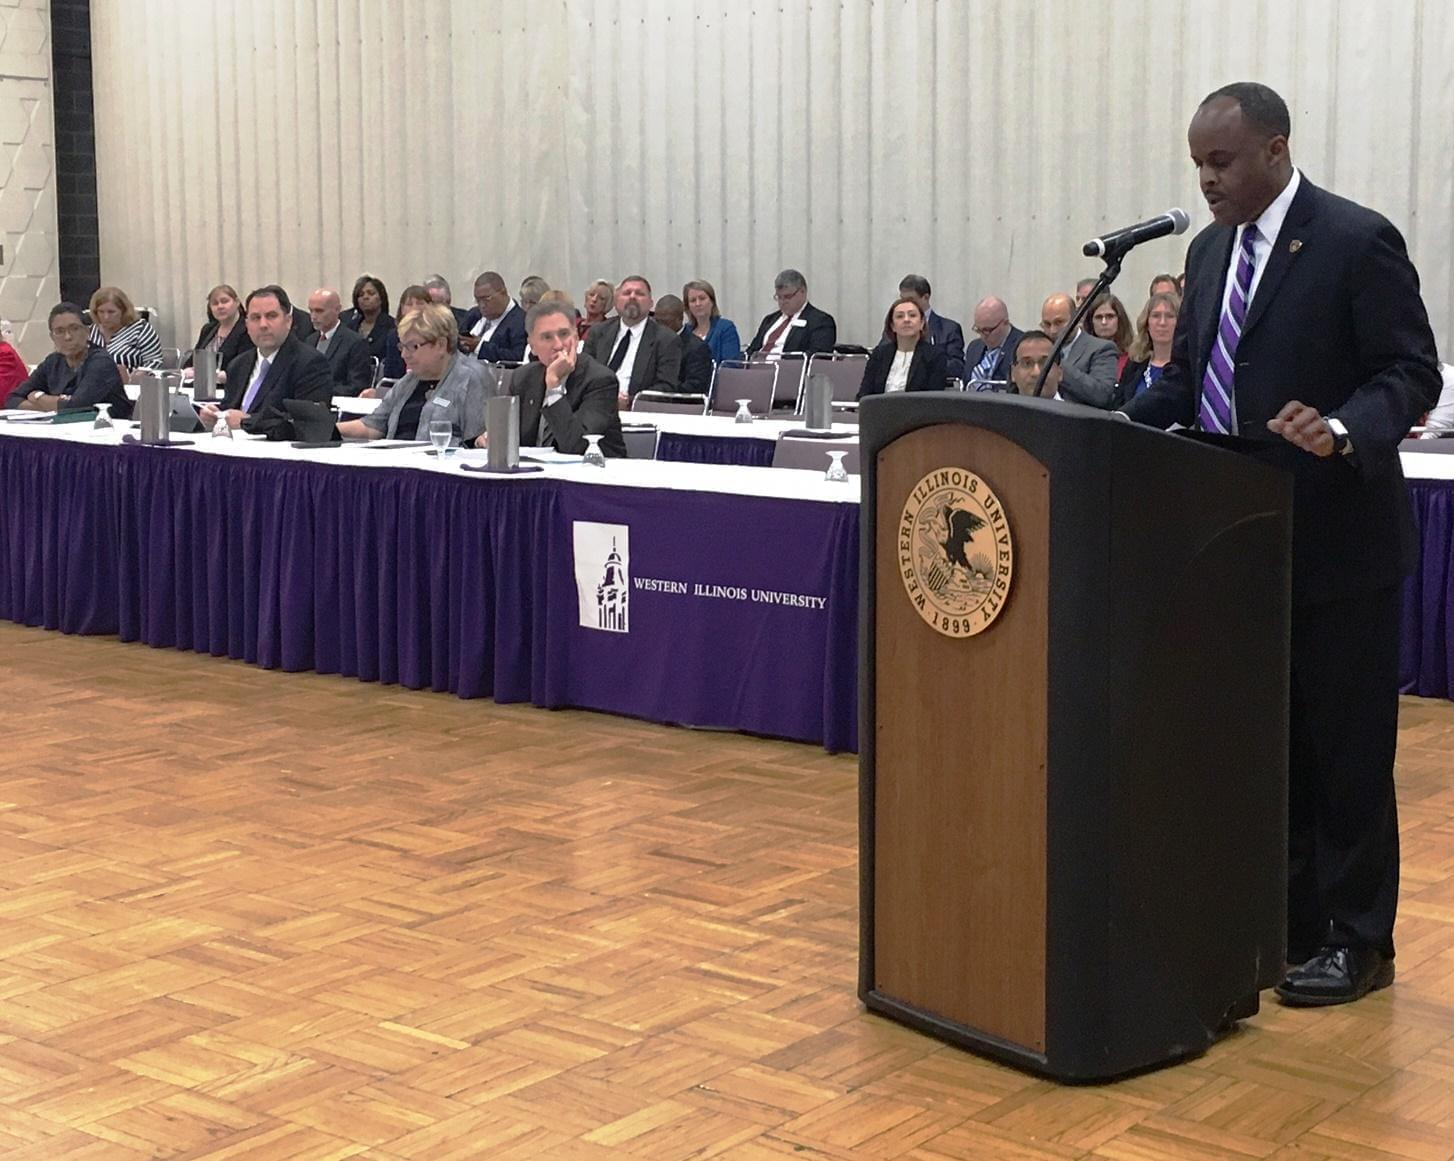 WIU President Jack Thomas speaking at an IBHE meeting in Macomb.